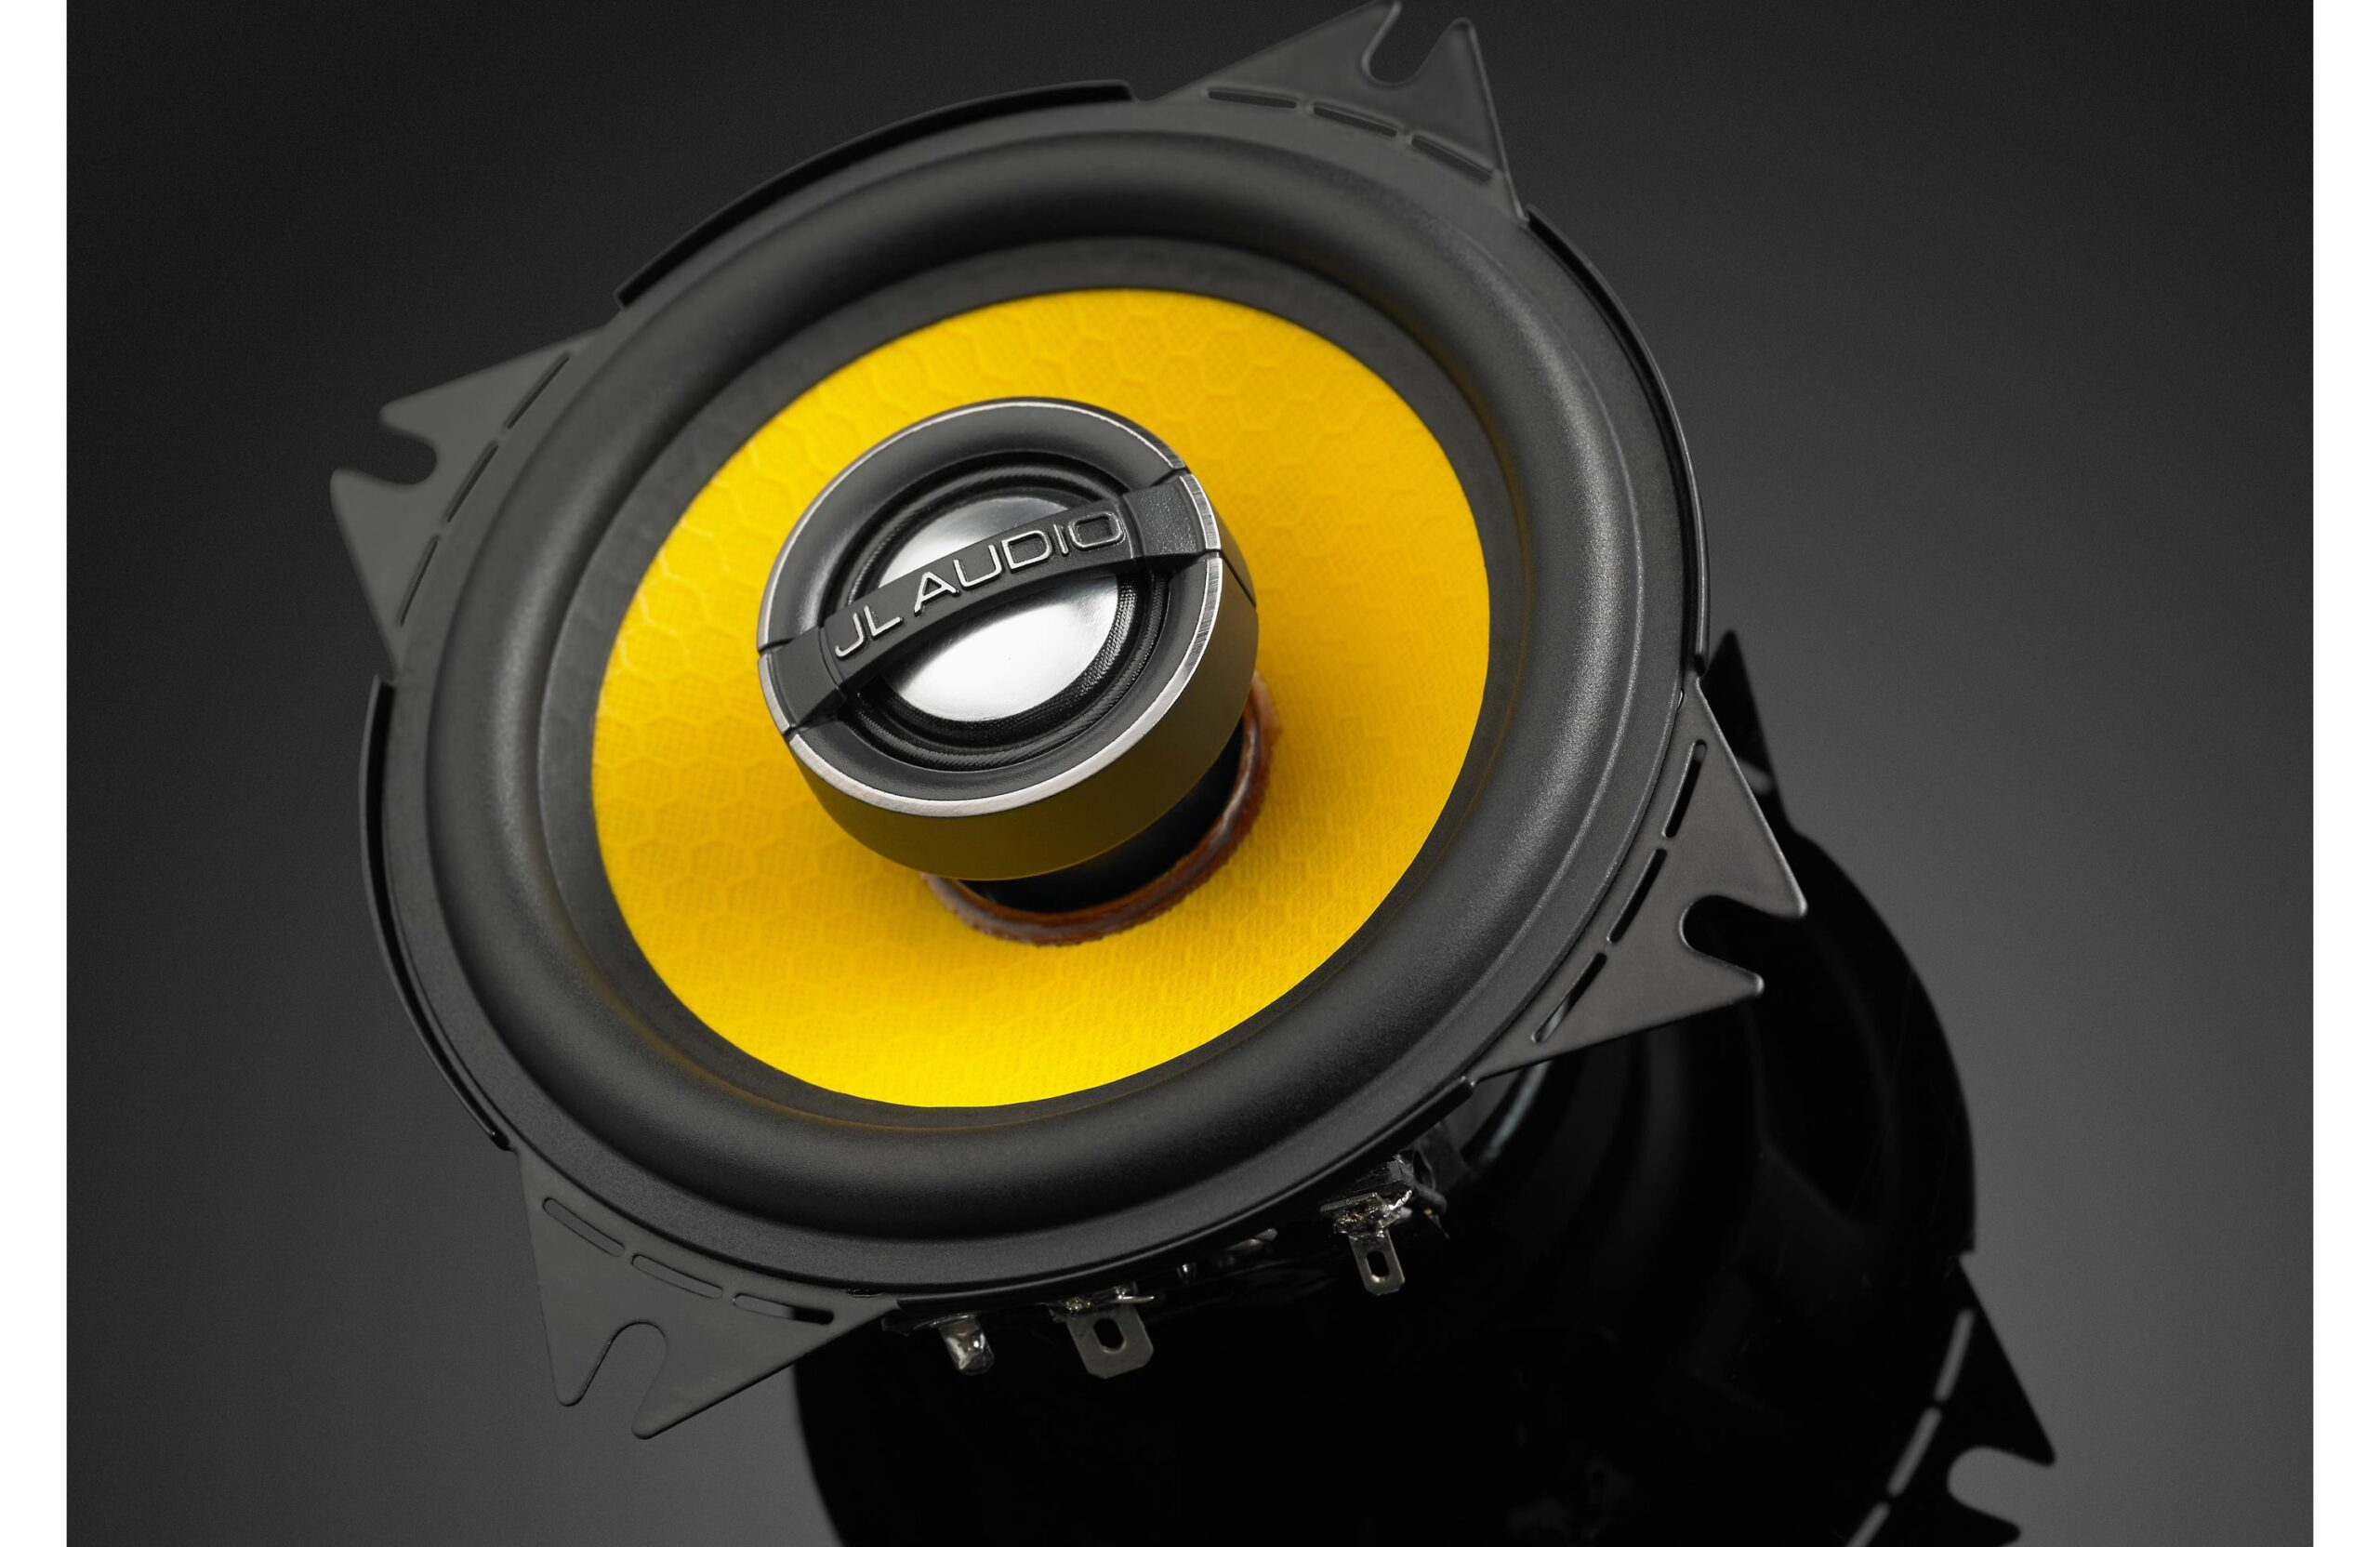 C1 400x Foh Coaxial Speakers Life Style Store Sydney Nsw